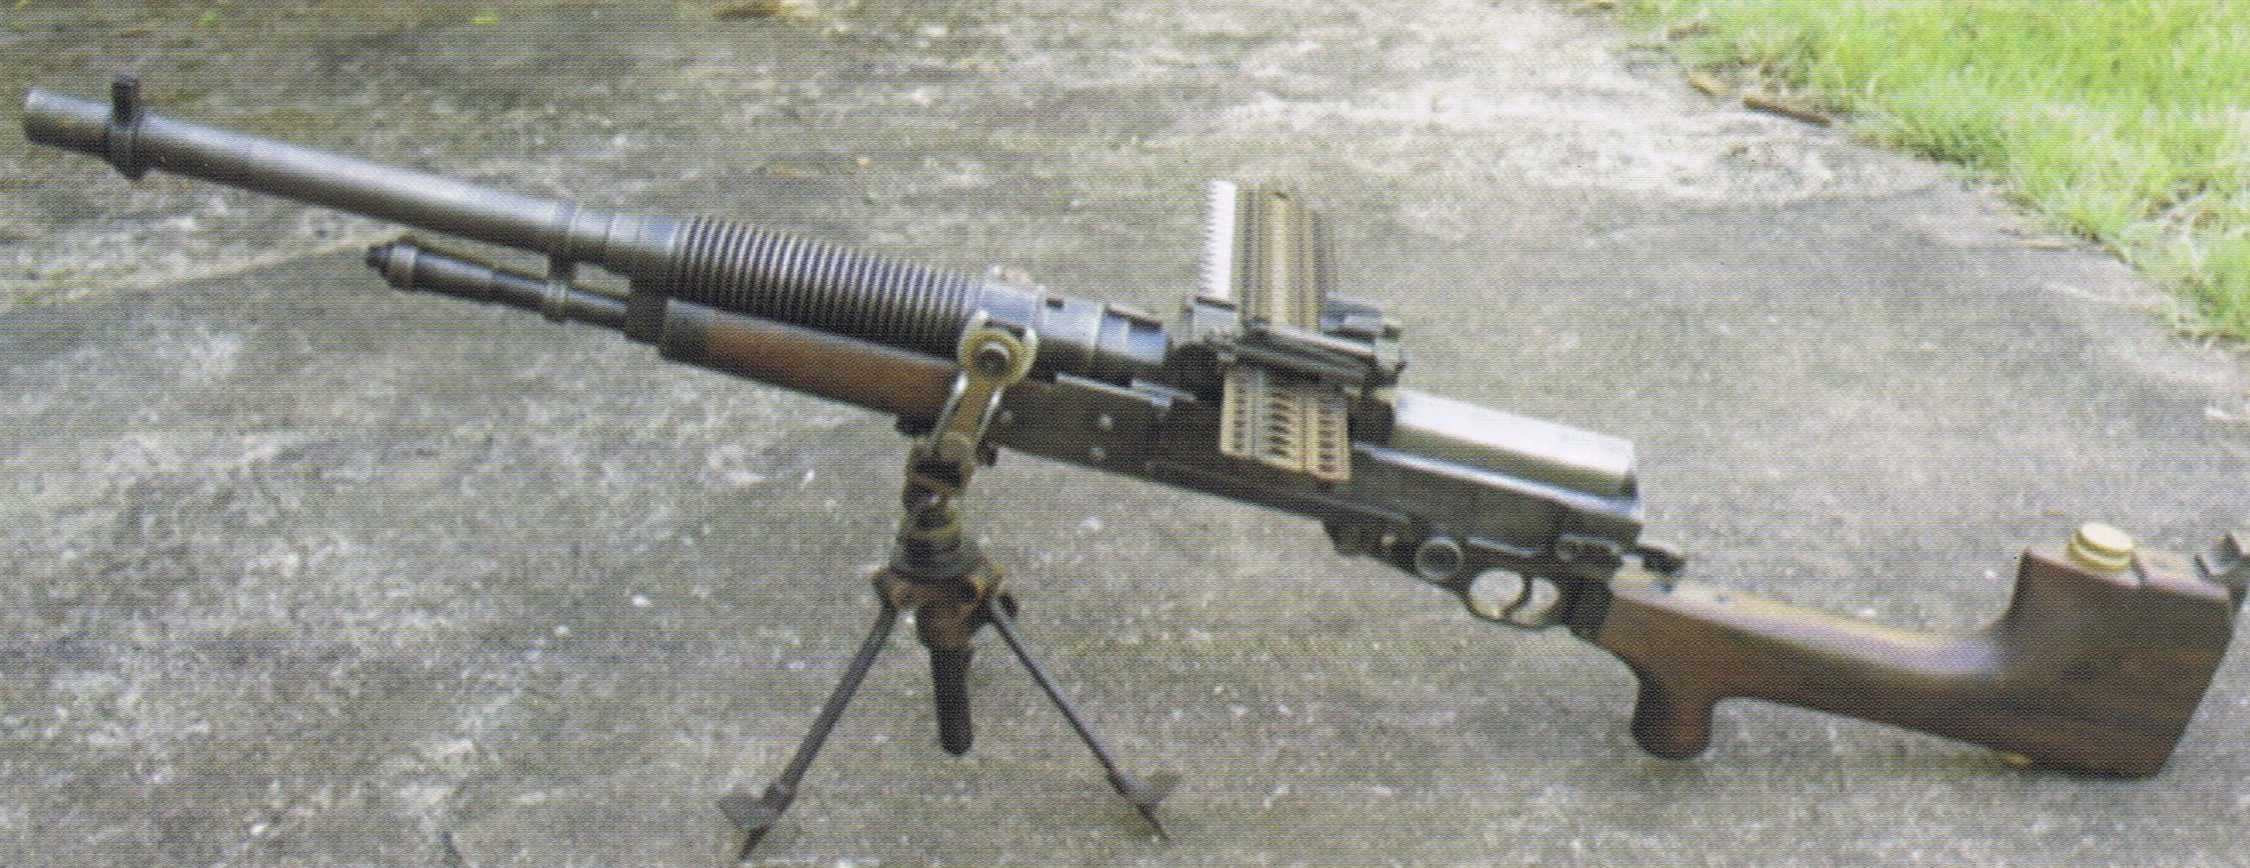 Replica Hotchkiss LMG